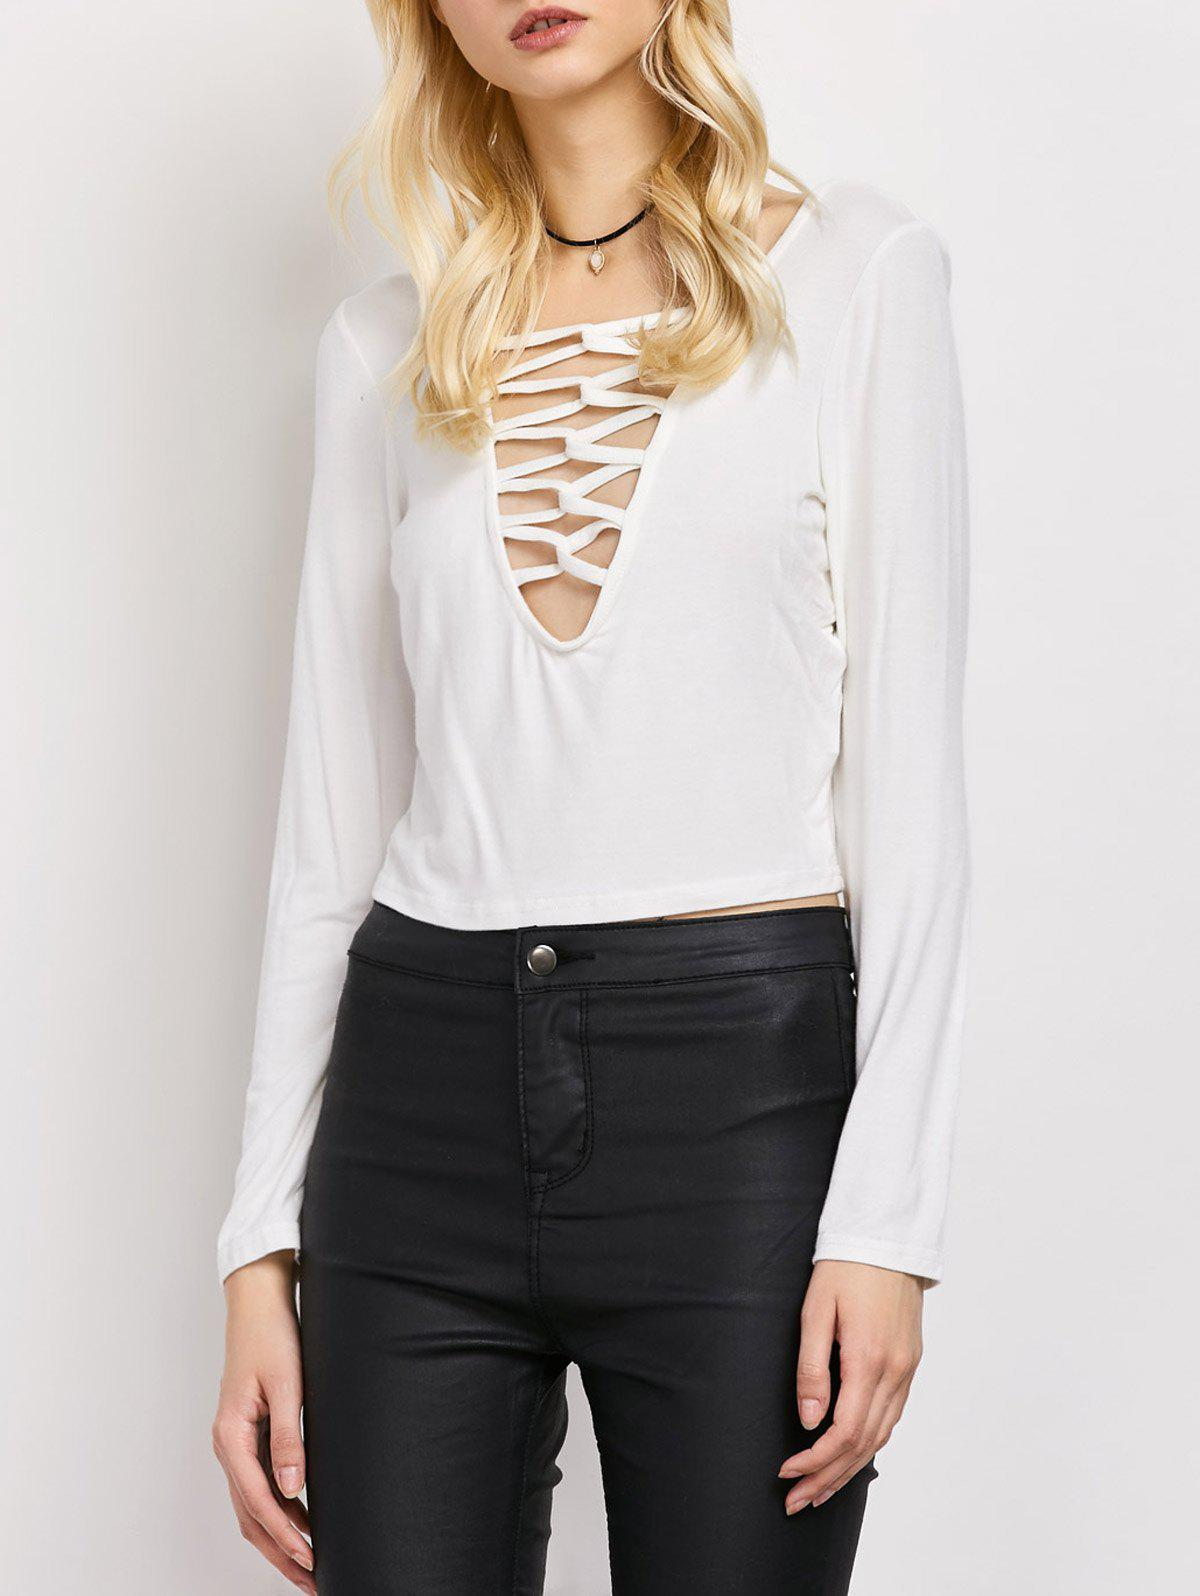 Lace-Up Cut Out Fitting T-Shirt - WHITE M